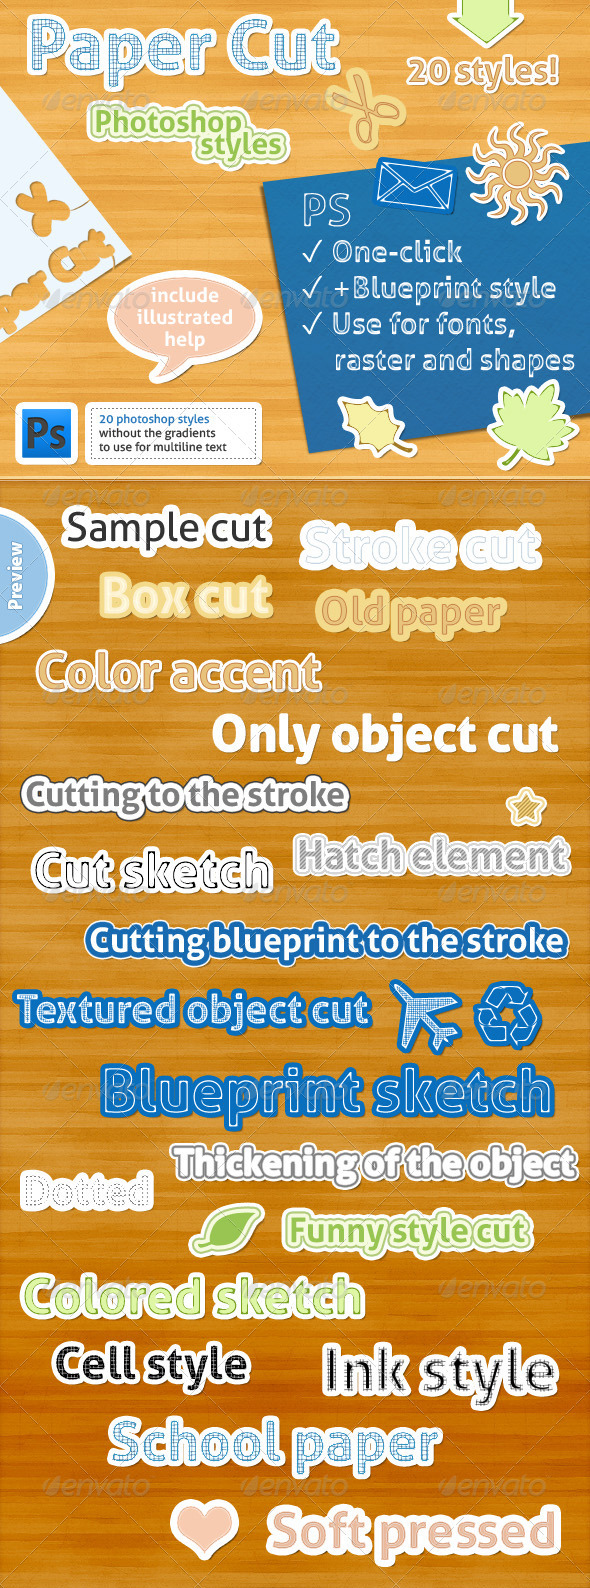 GraphicRiver 20 Photoshop Styles Paper Cut 1556645